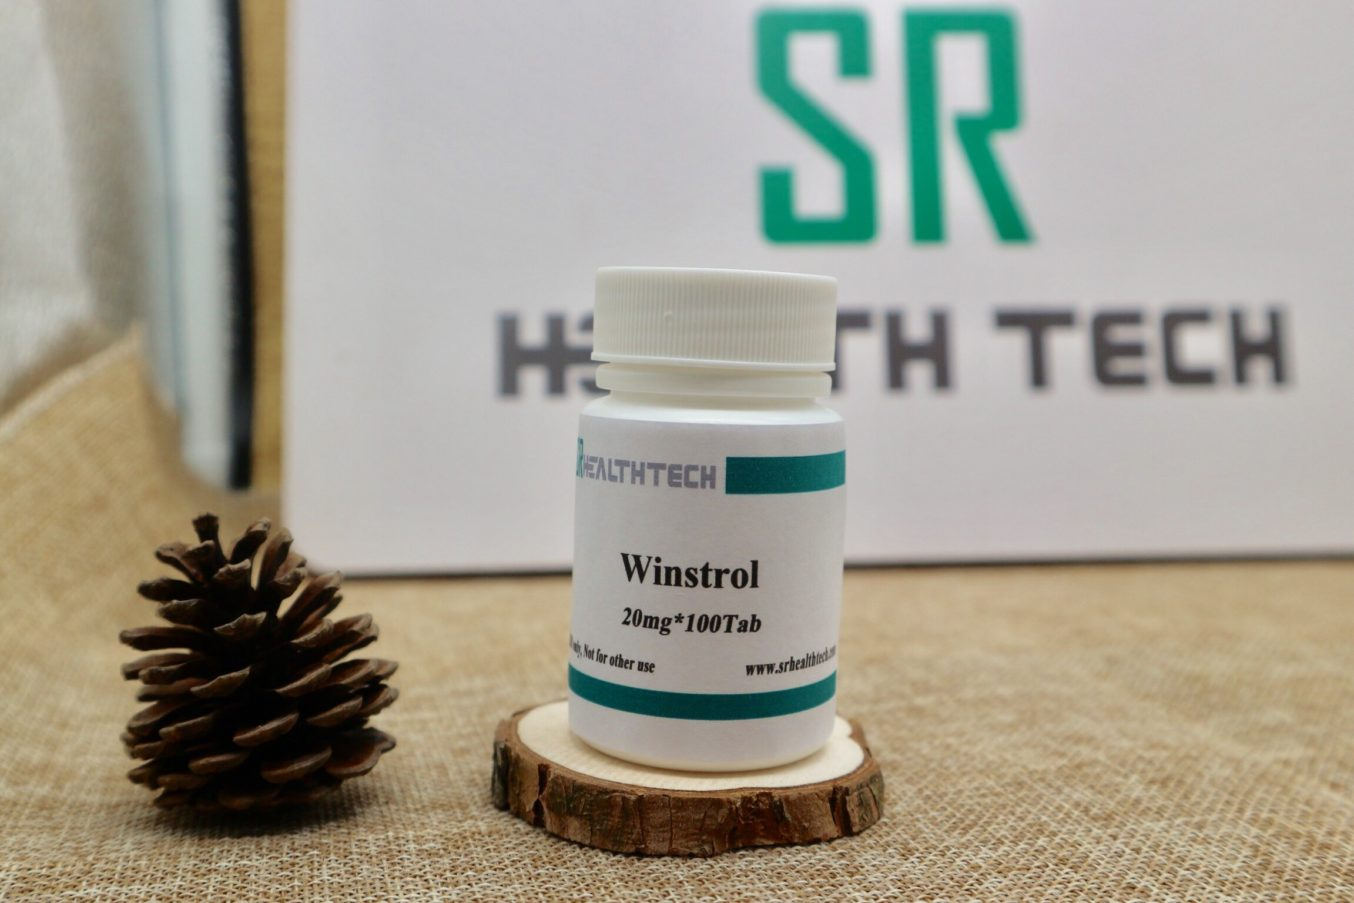 Winstrol legal steroids